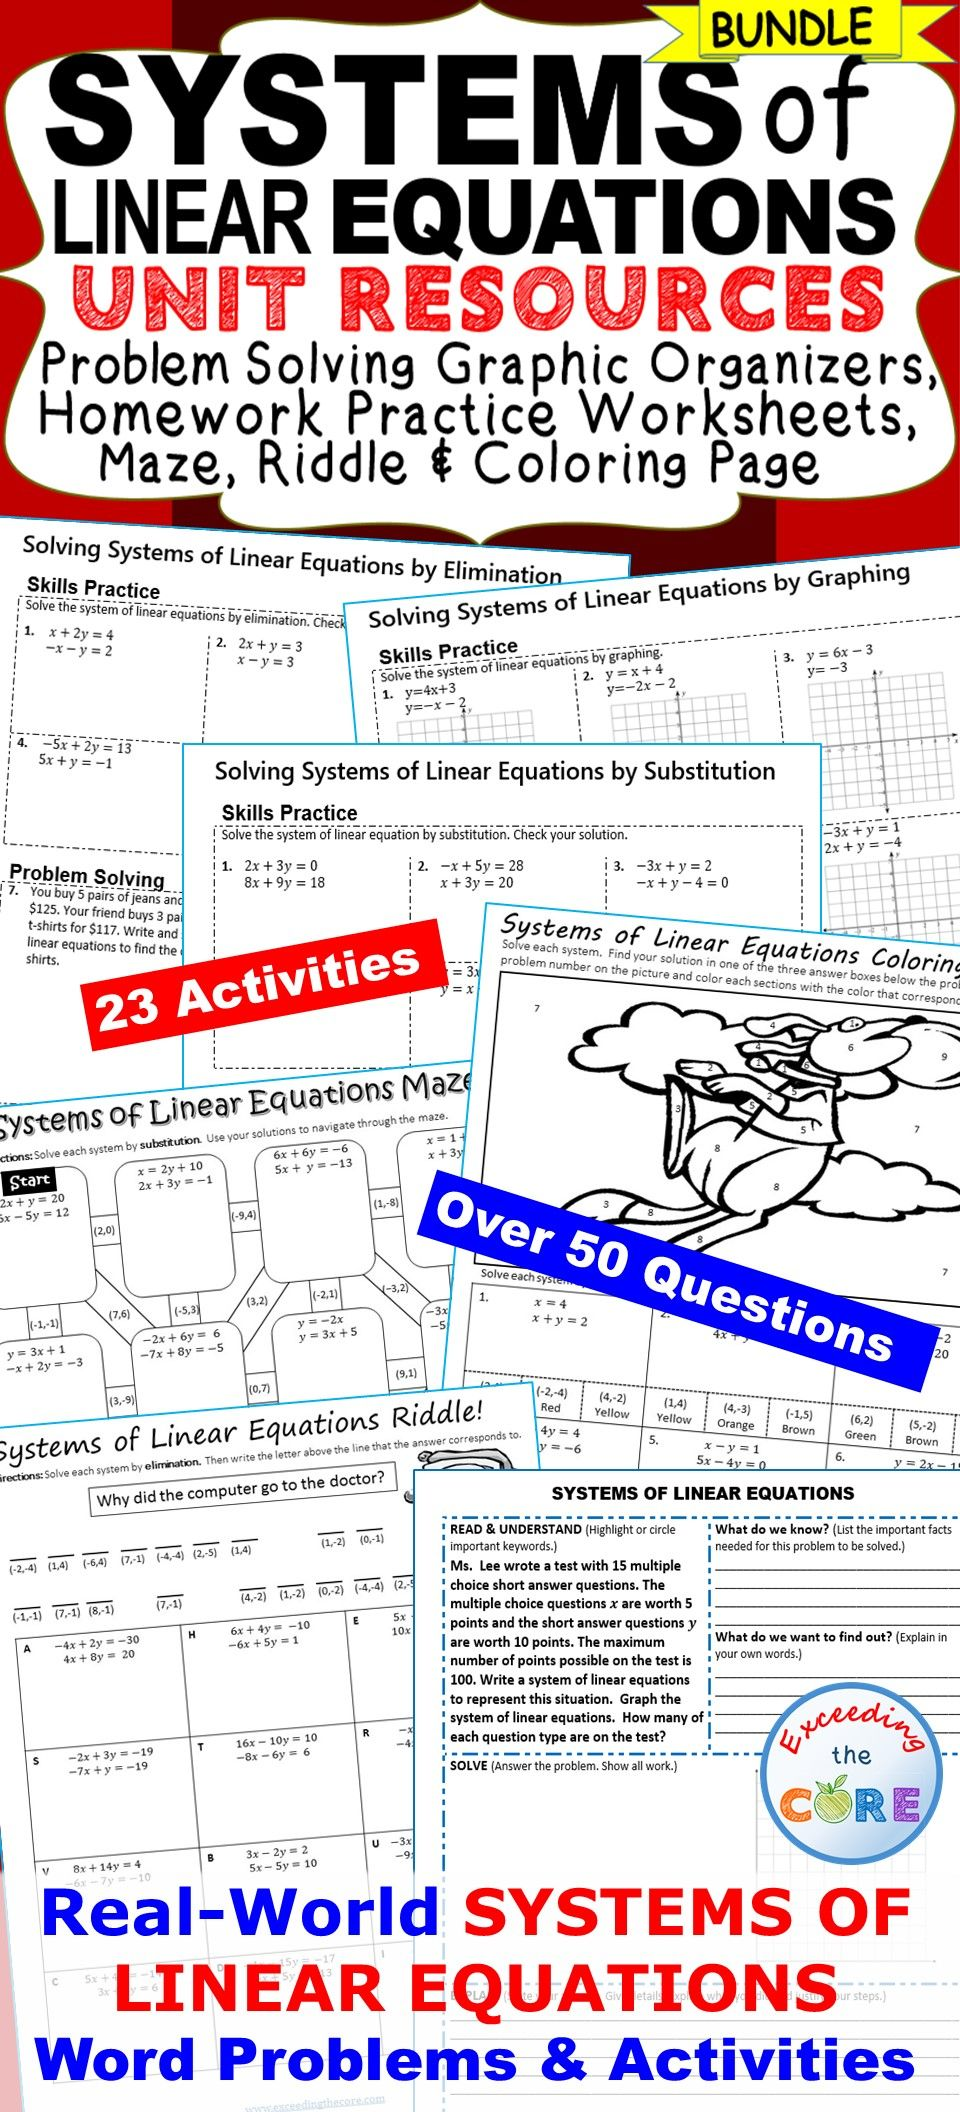 SYSTEMS OF LINEAR EQUATIONS Homework Practice, Graphic